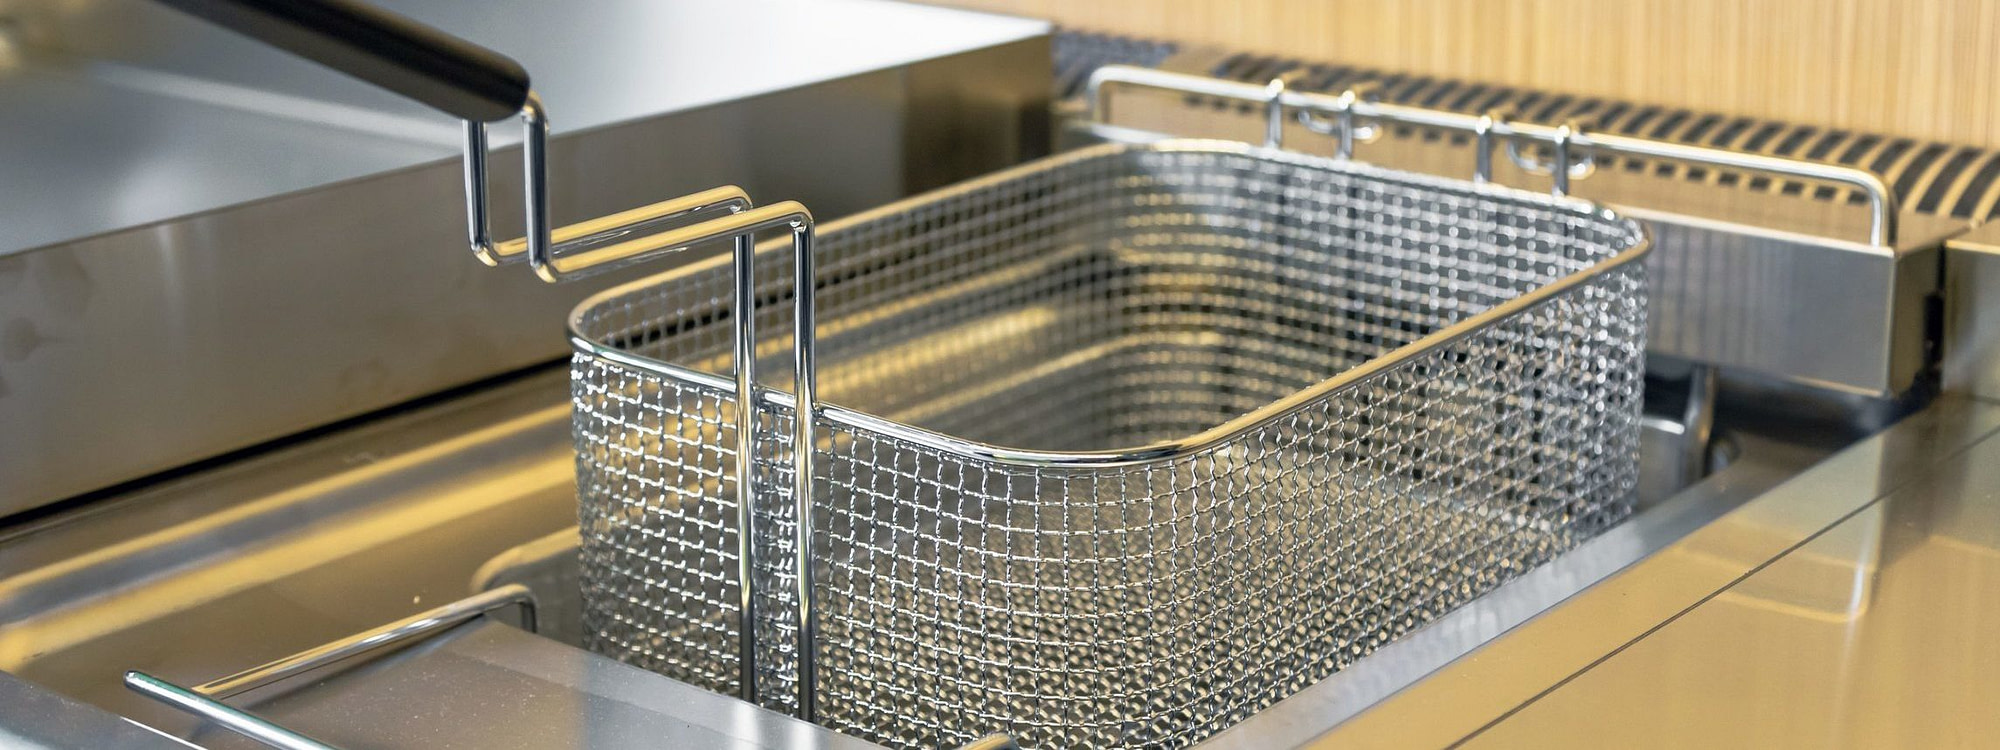 How To Clean a Deep Fat Fryer- 17 Steps